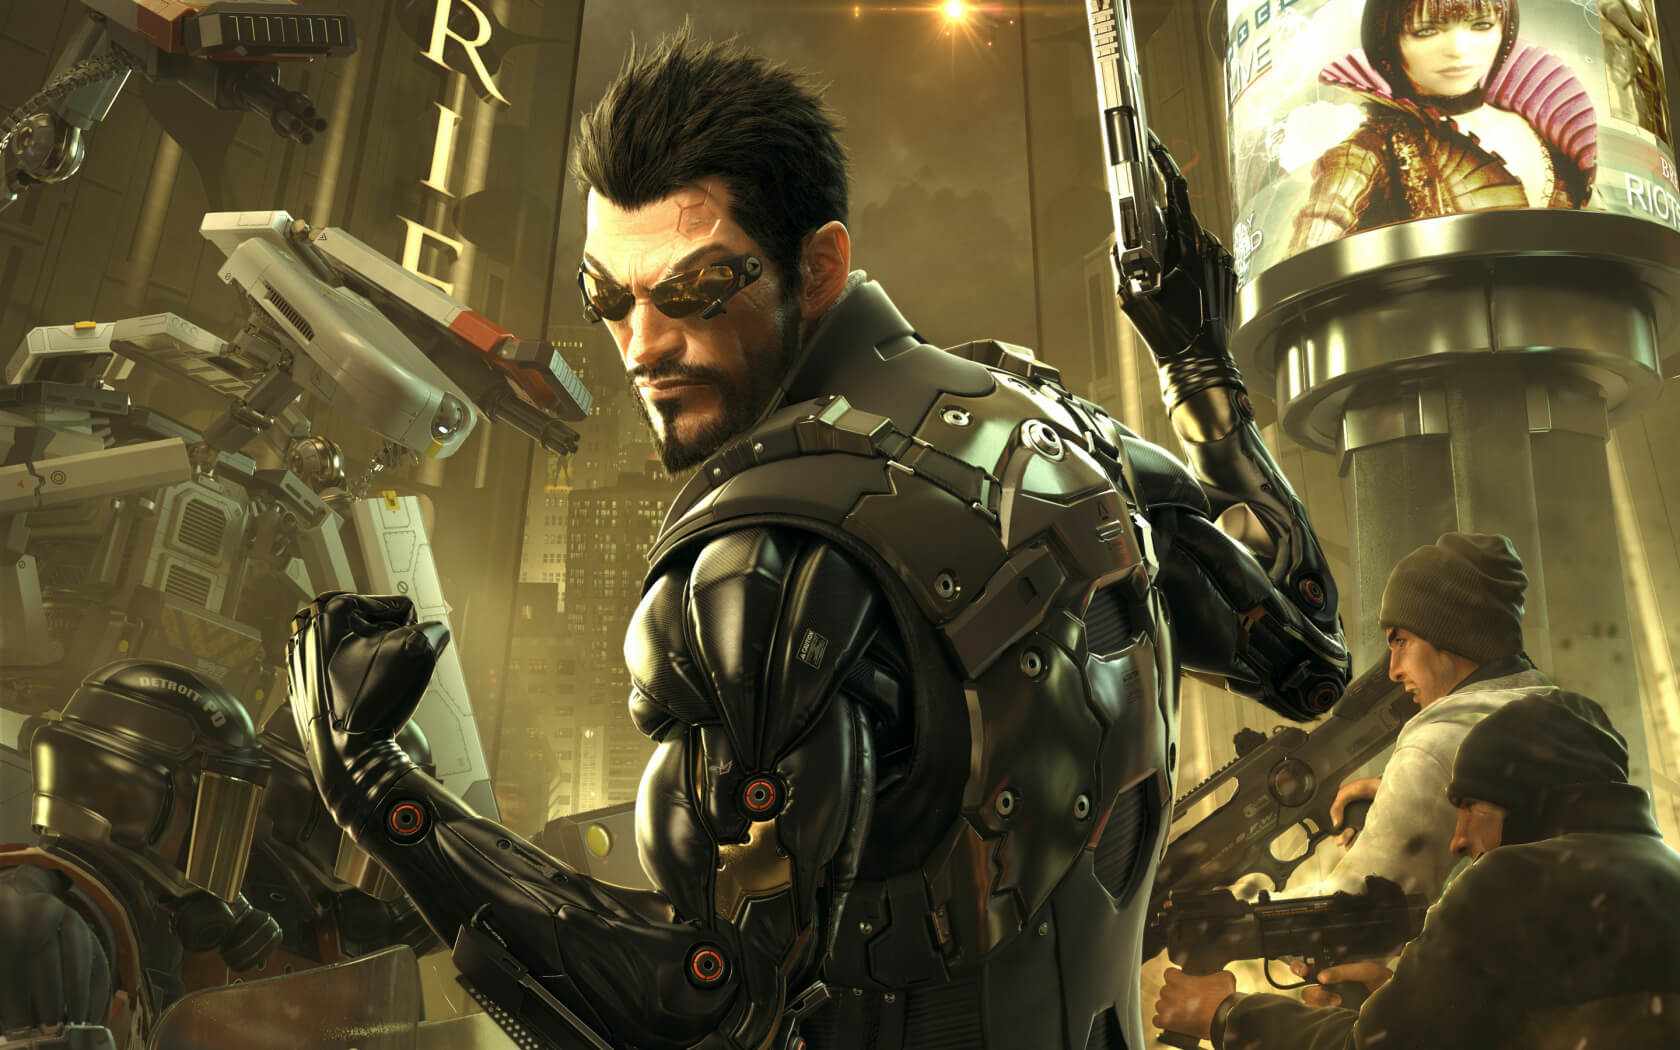 Square Enix Puts Deus Ex Rumors to Rest